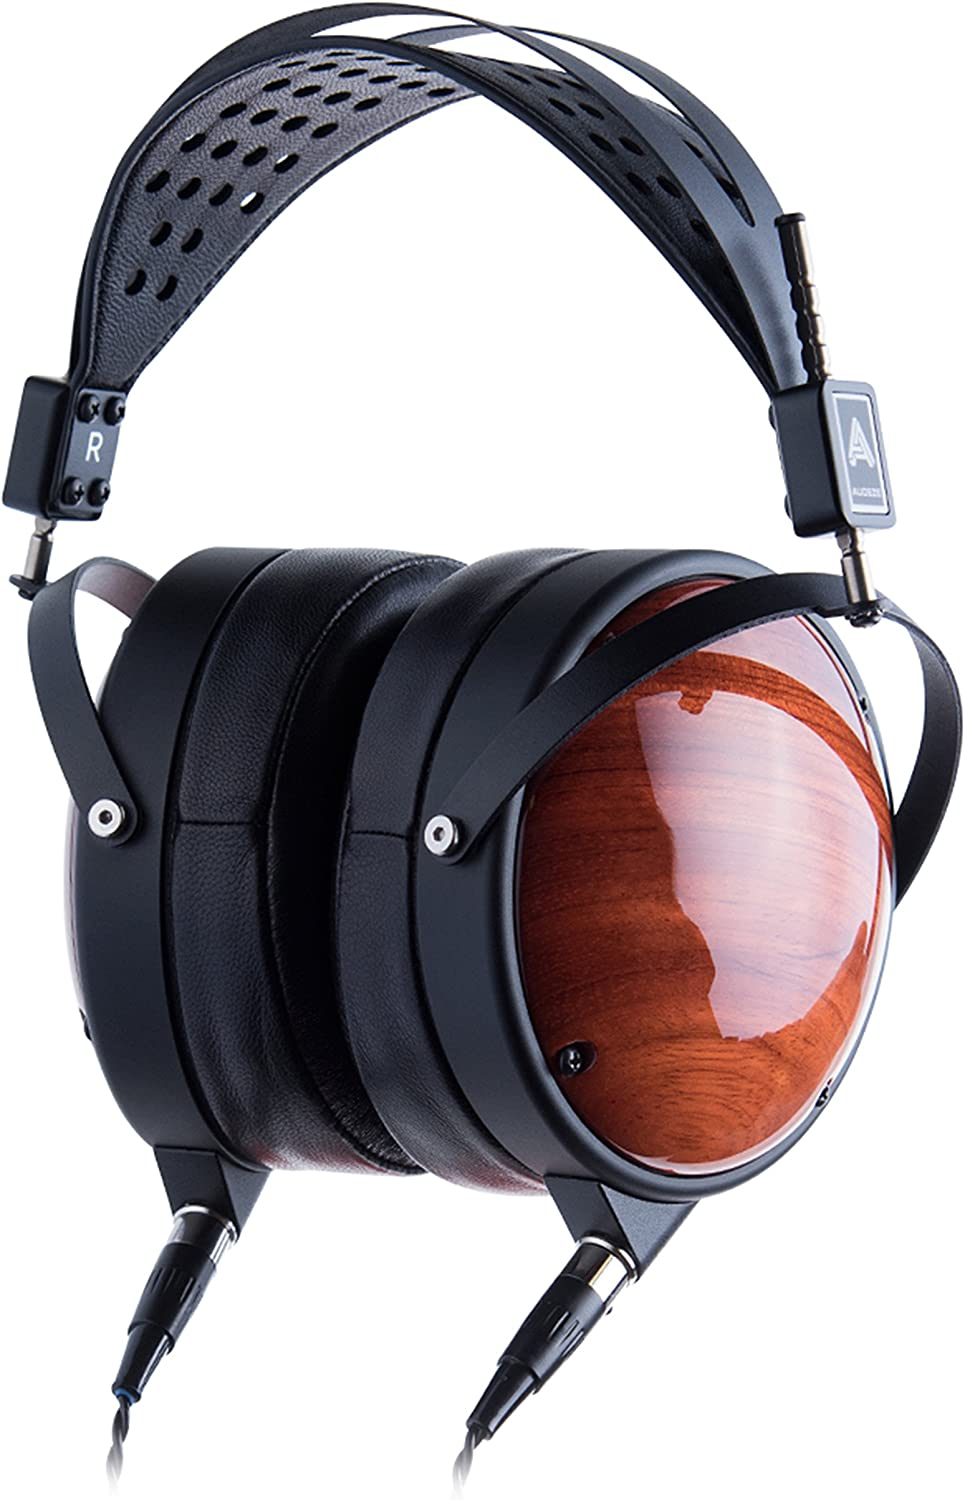 Audeze LCD-XC Over Ear Closed Back Headphone, Maple Wood with New Suspension Headband and Travel case